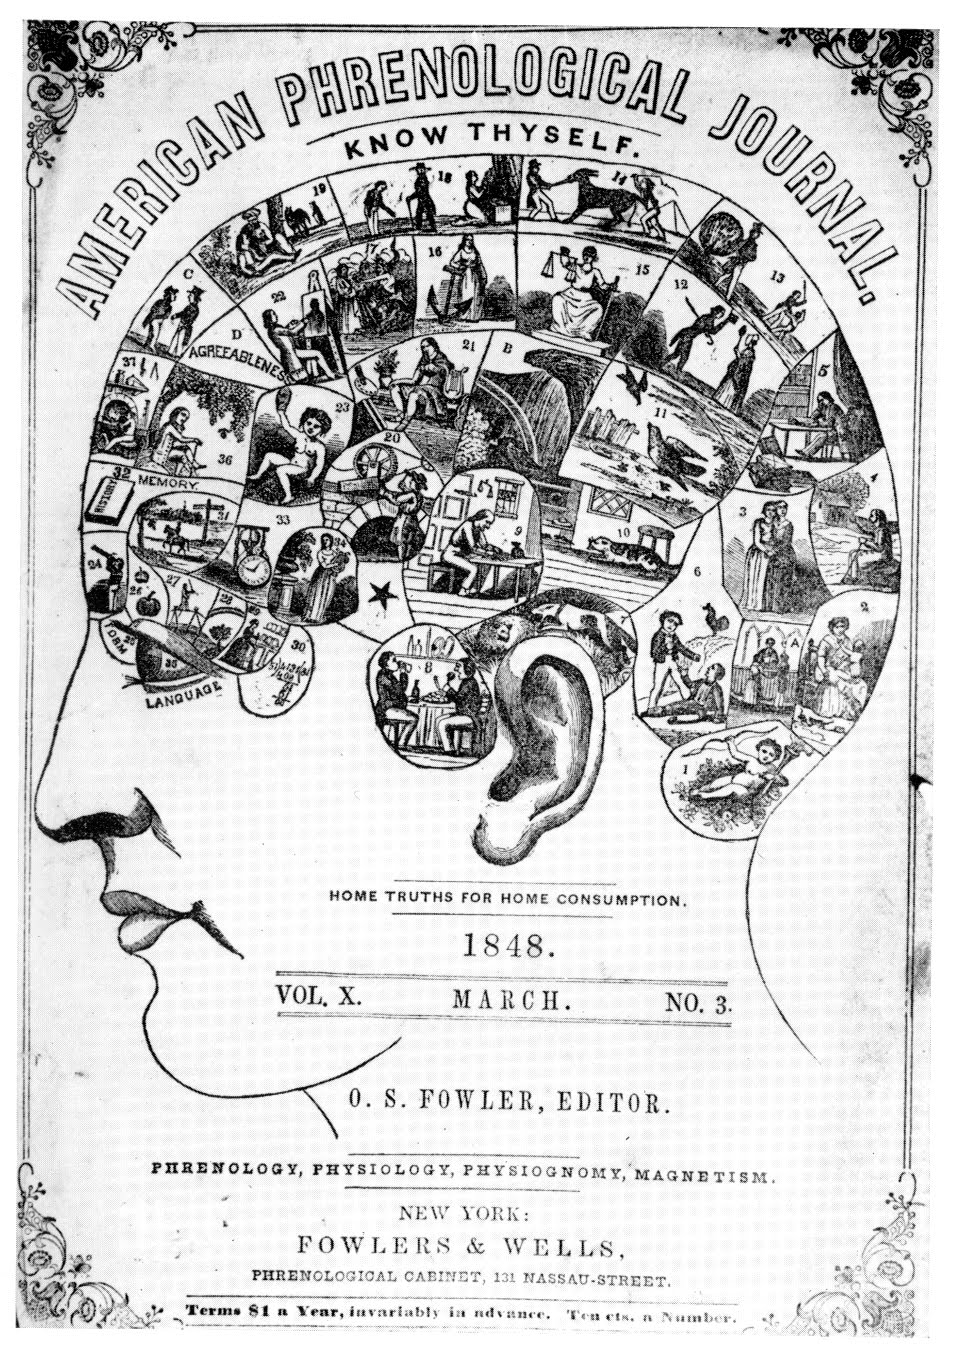 development of the science of psychology during the 19th century The development of the science of psychology during the 19th century psychology is psychology a science  in order to determine if psychology is a science or not it is important to understand what being a science means.